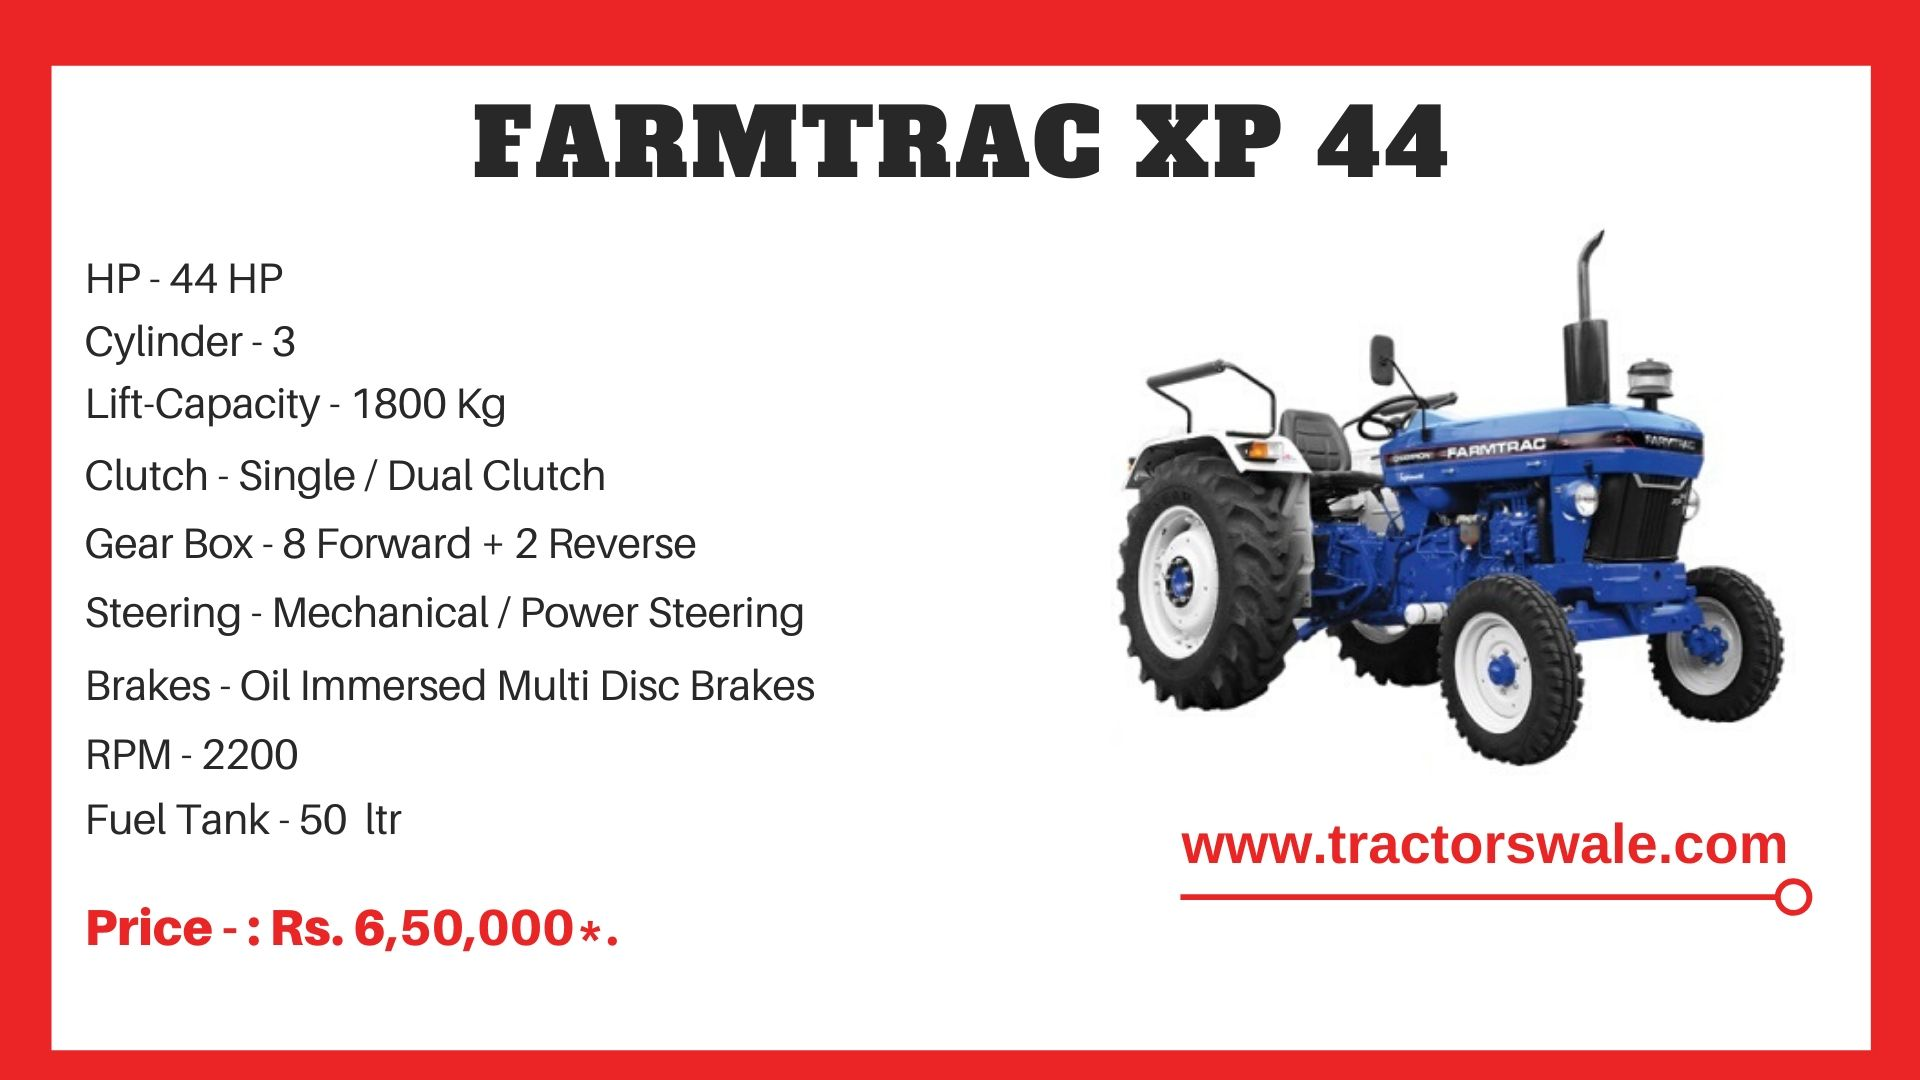 Farmtrac XP 44 tractor price